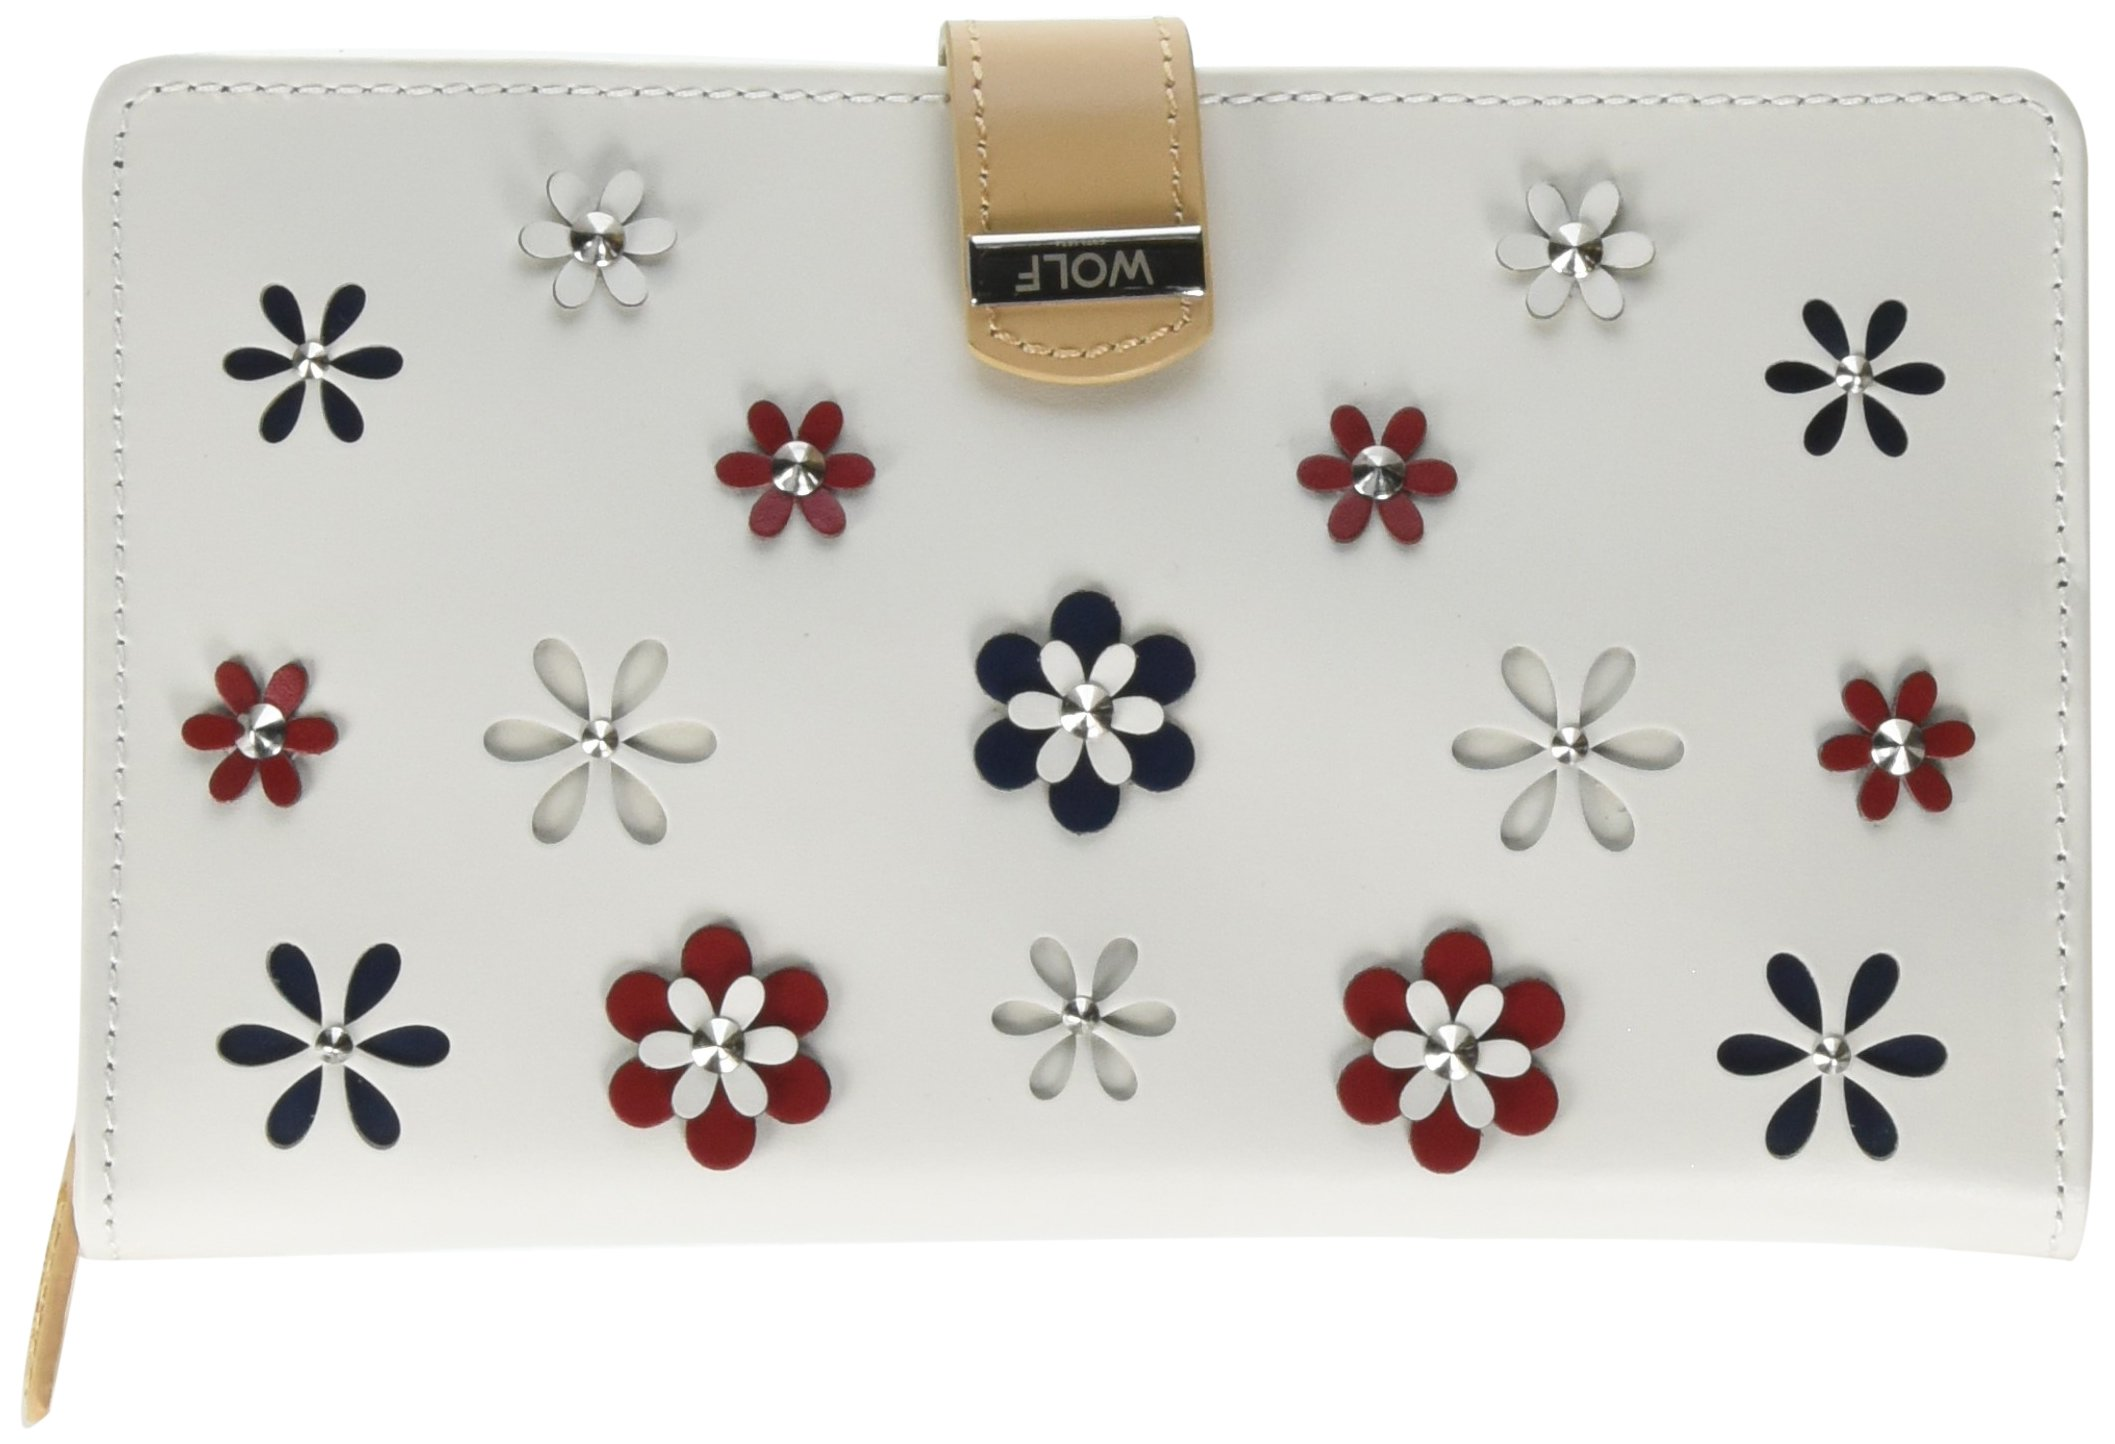 WOLF 467453 Blossom White Jewelry Portfolio With 3D Colorful Flowers by WOLF